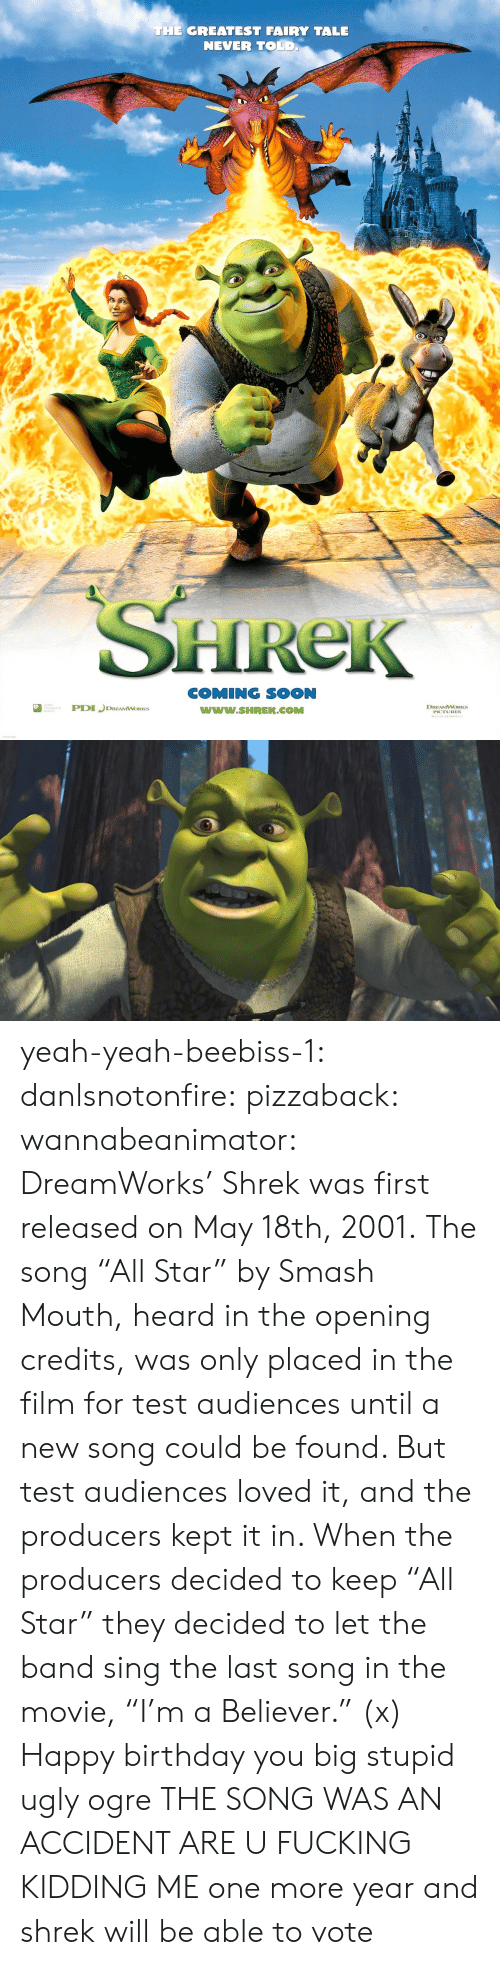 "fairy tale: THE GREATEST FAIRY TALE  NEVER TOLD  HReK  COMING SOON  www.SHREK.COMM  ted  DREAMWORKS yeah-yeah-beebiss-1: danlsnotonfire:  pizzaback:   wannabeanimator:   DreamWorks' Shrek was first released on May 18th, 2001. The song ""All Star"" by Smash Mouth, heard in the opening credits, was only placed in the film for test audiences until a new song could be found. But test audiences loved it, and the producers kept it in. When the producers decided to keep ""All Star"" they decided to let the band sing the last song in the movie, ""I'm a Believer."" (x)   Happy birthday you big stupid ugly ogre   THE SONG WAS AN ACCIDENT ARE U FUCKING KIDDING ME   one more year and shrek will be able to vote"